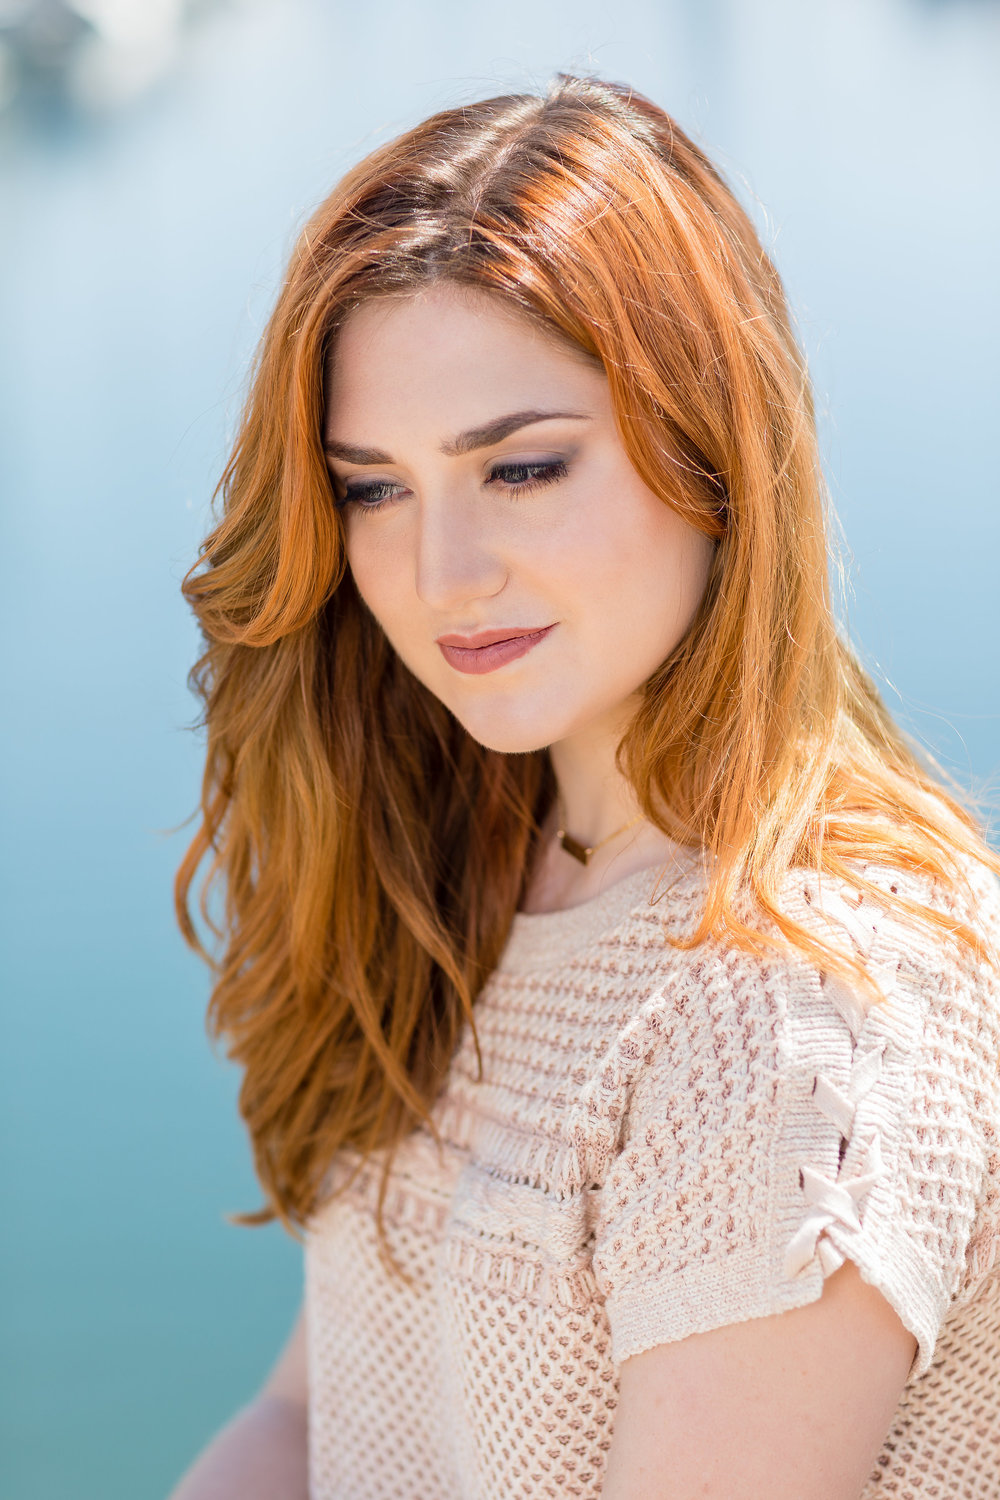 Red headed woman outdoor portraits.jpg